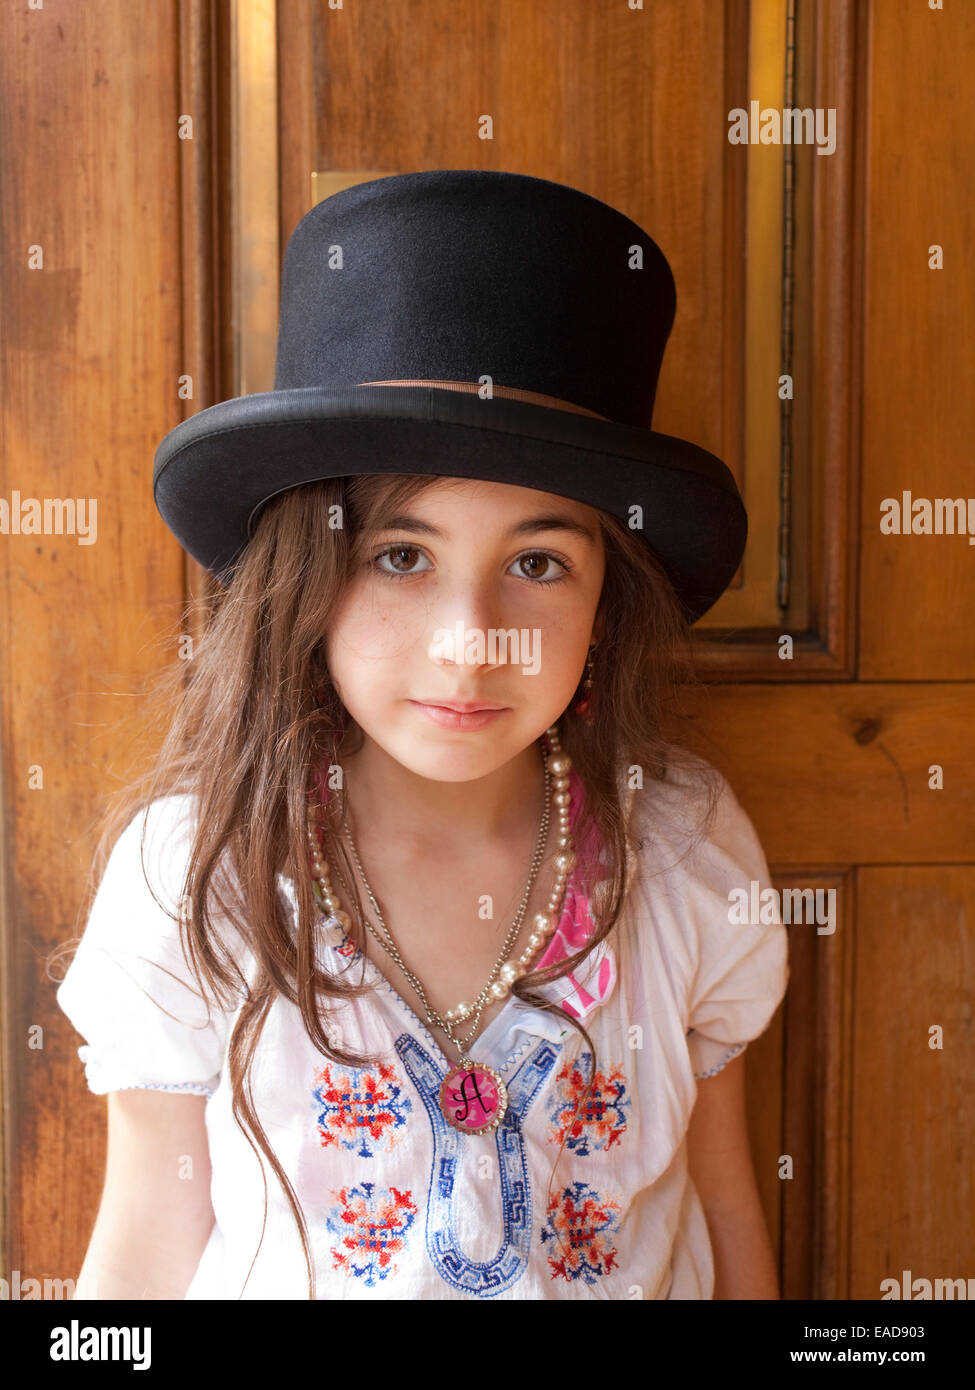 Young Girl In Top Hat - Stock Image